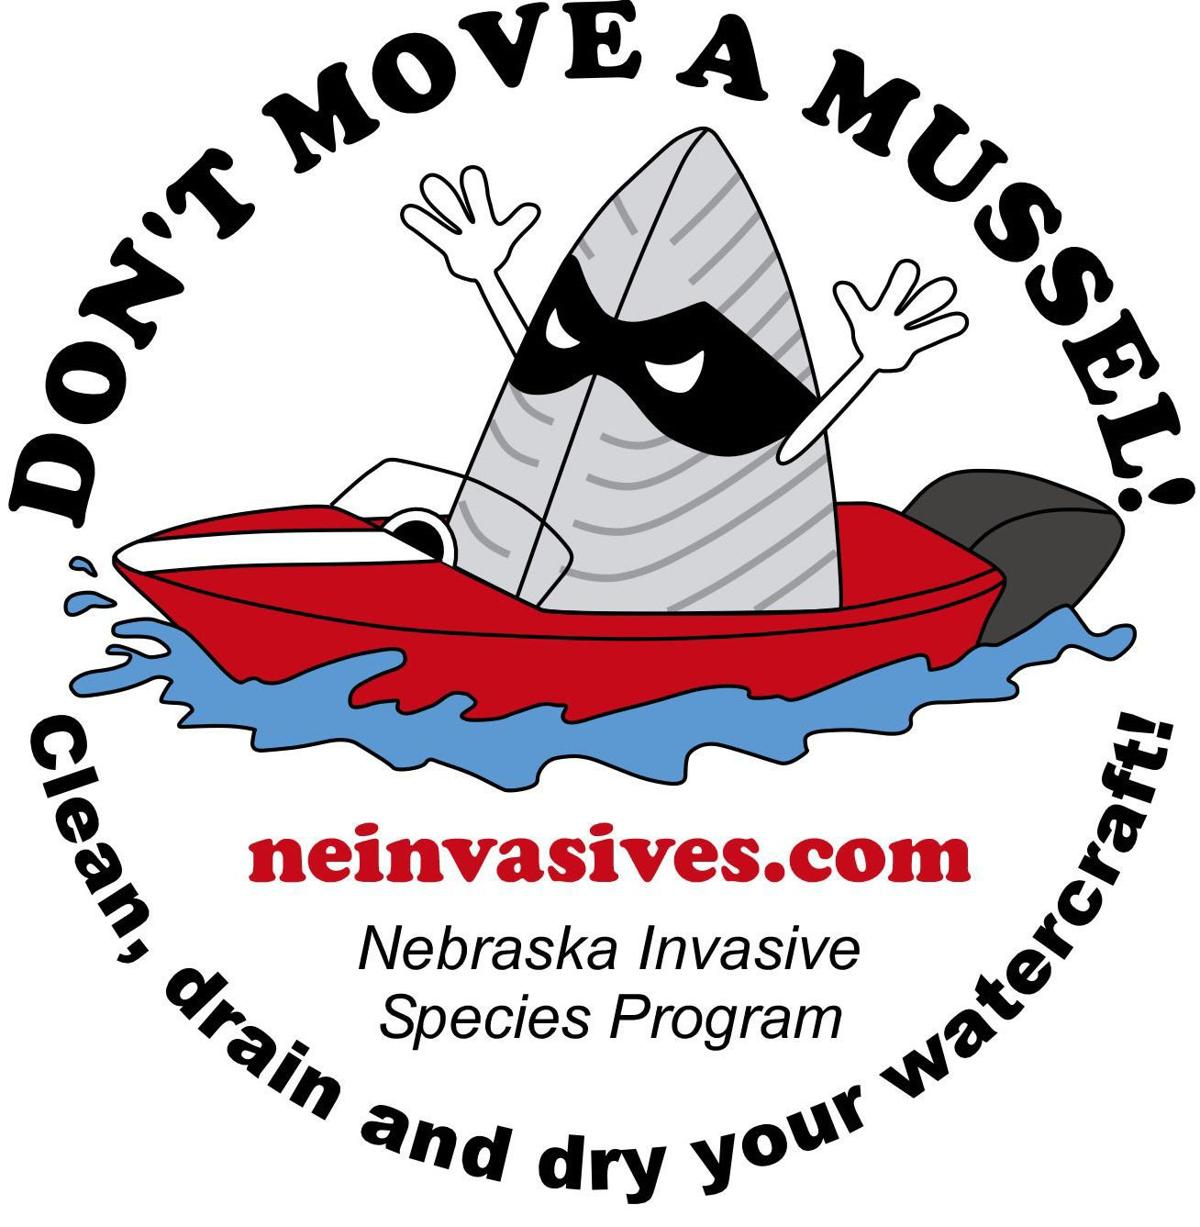 Don't Move a Mussel_2013.jpg